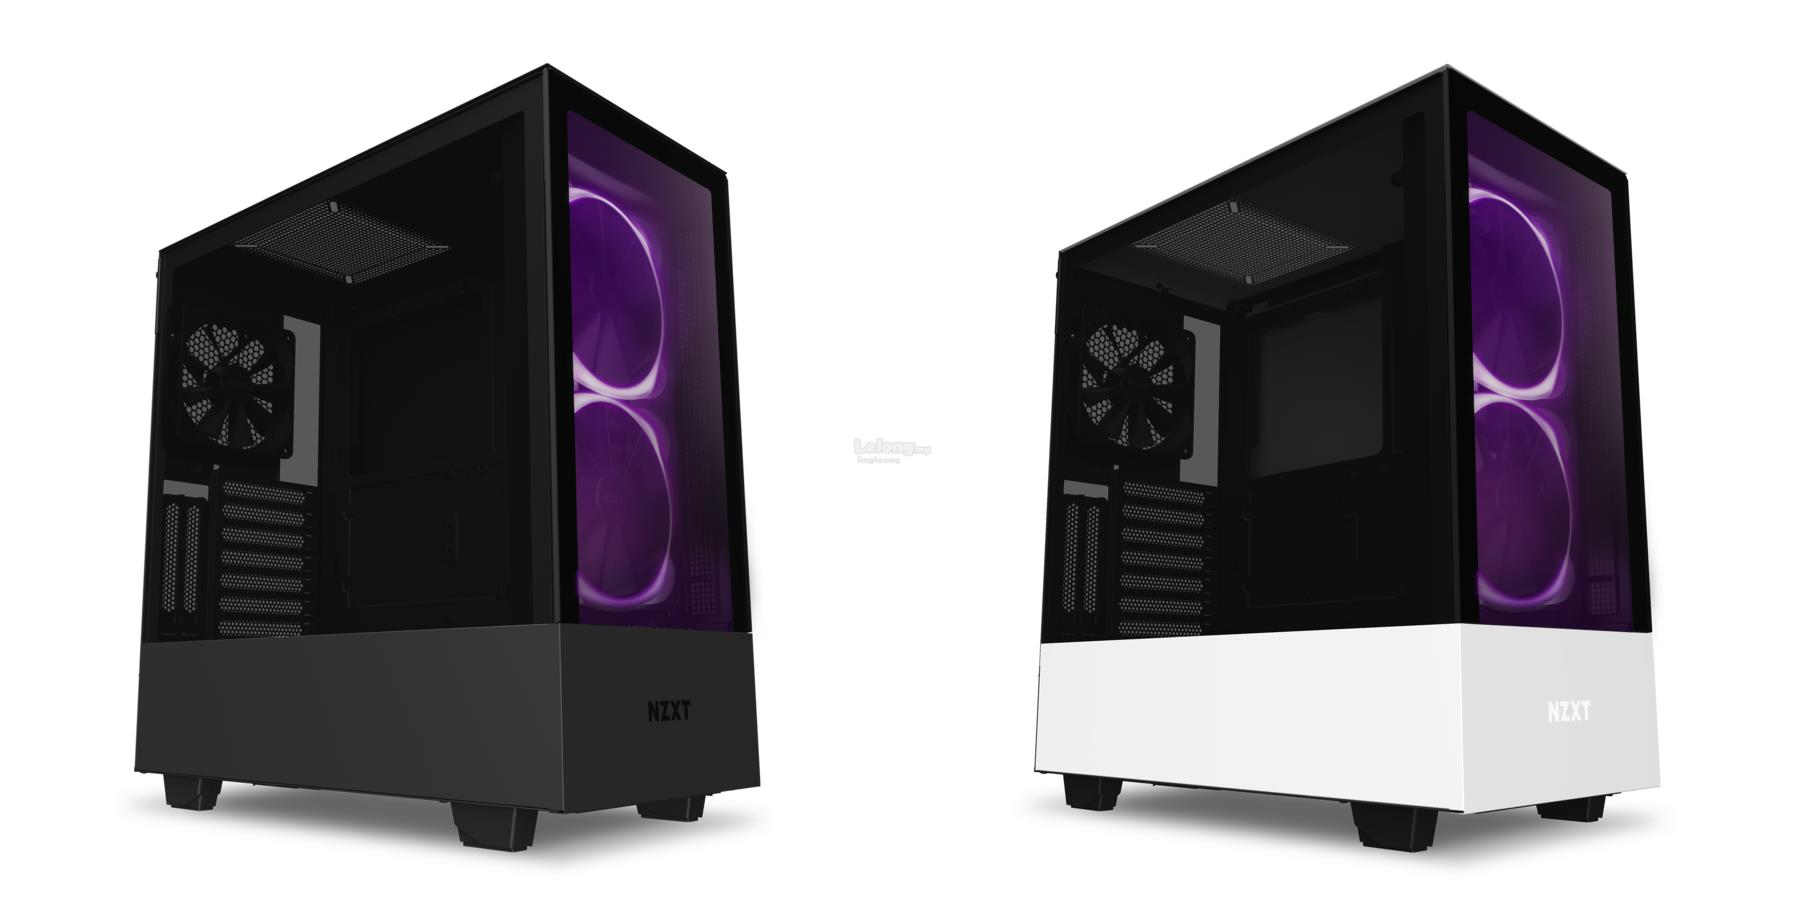 # NZXT H510 Elite Premium Tempered Glass Mid Tower Case # Black/White